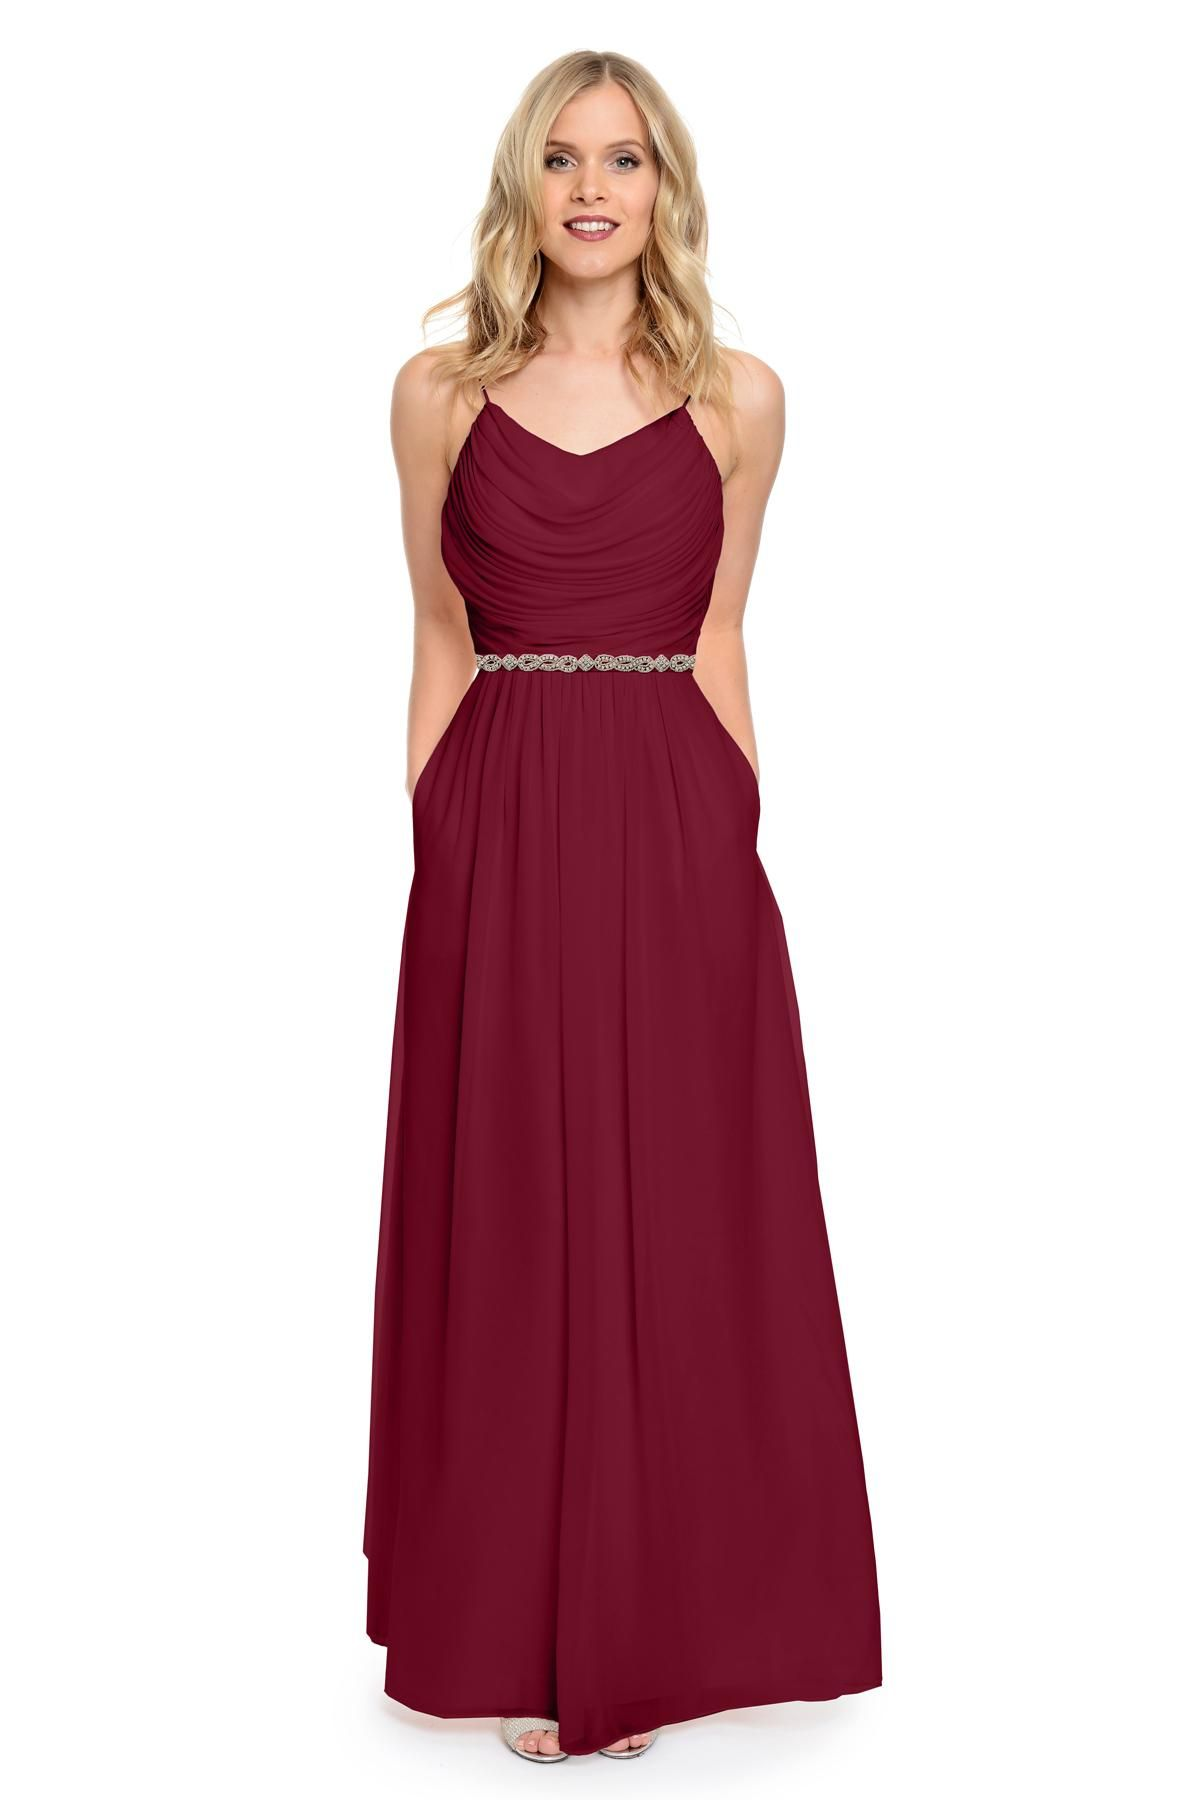 Cheap 2016 wineblueburgundy bridesmaid dresses long pleated cheap 2016 wineblueburgundy bridesmaid dresses long pleated wedding guest dresses for wedding prom evening party formal gown as low as 12061 ombrellifo Choice Image